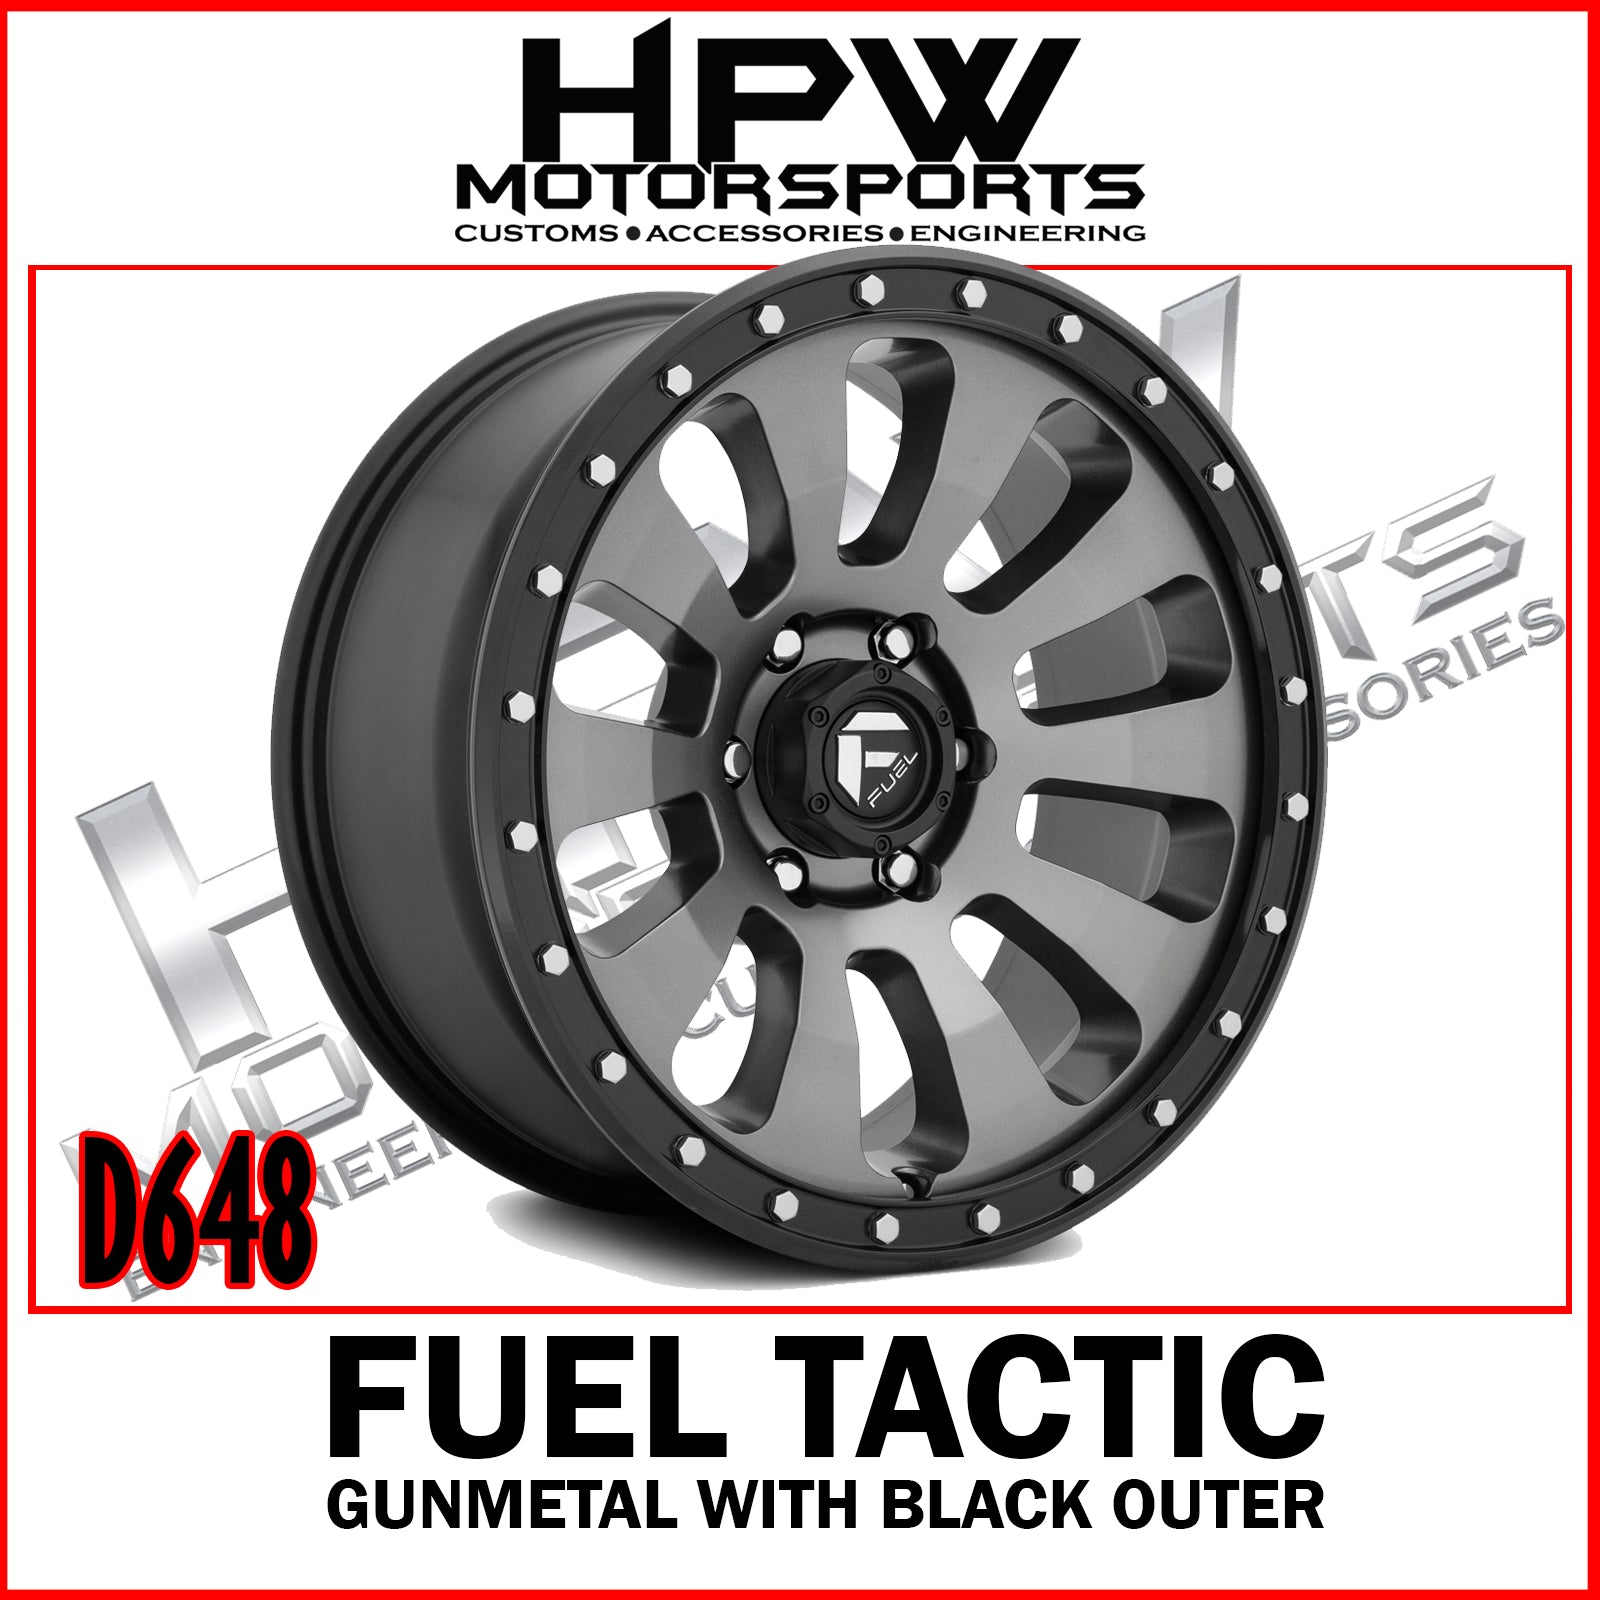 D648 FUEL TACTIC - Gunmetal center & black outer - Set of 4